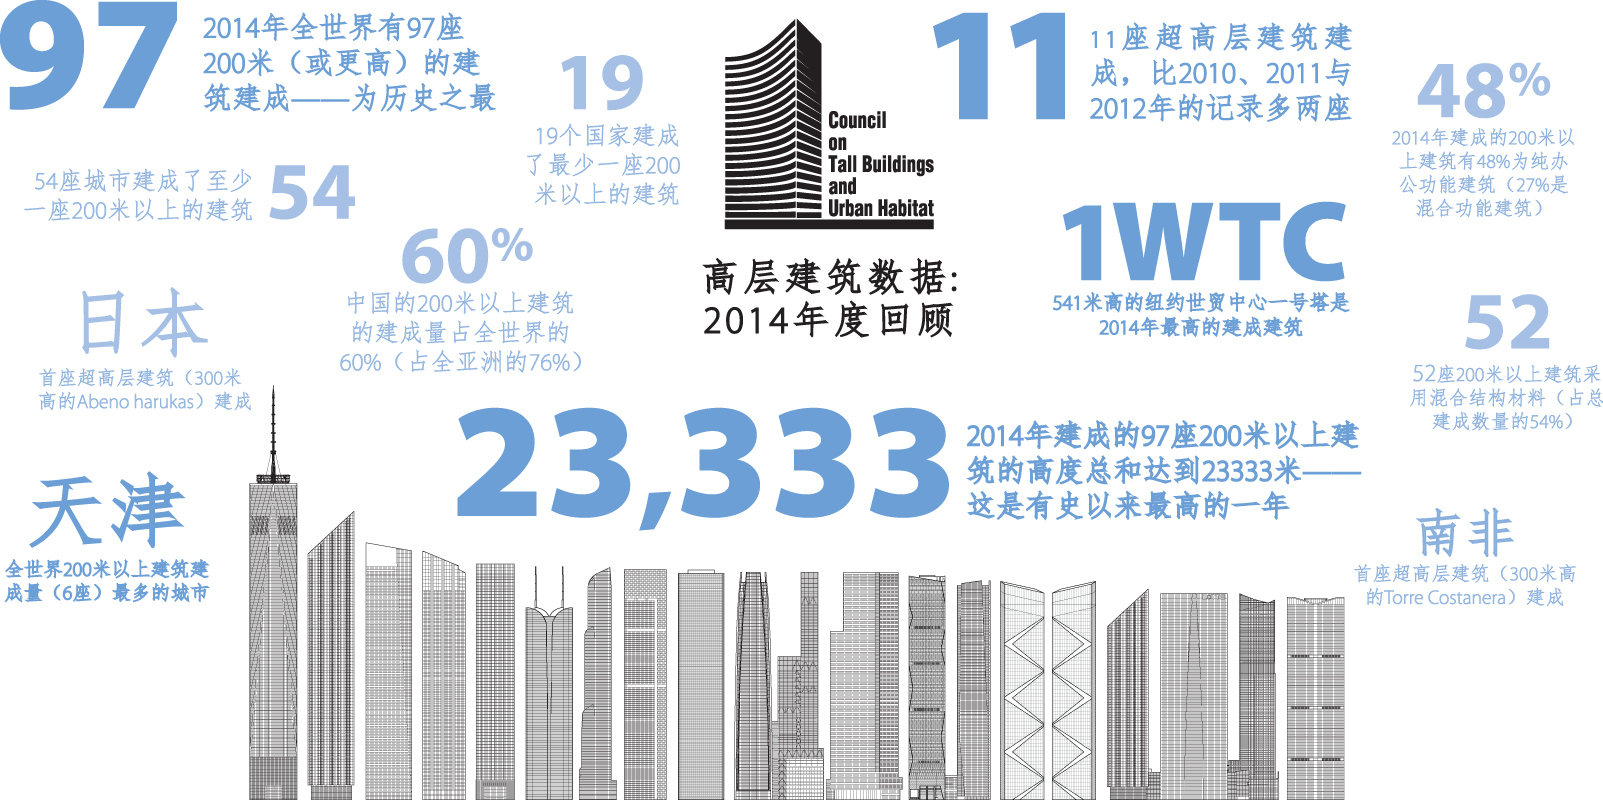 CTBUH 2014 Year in Review